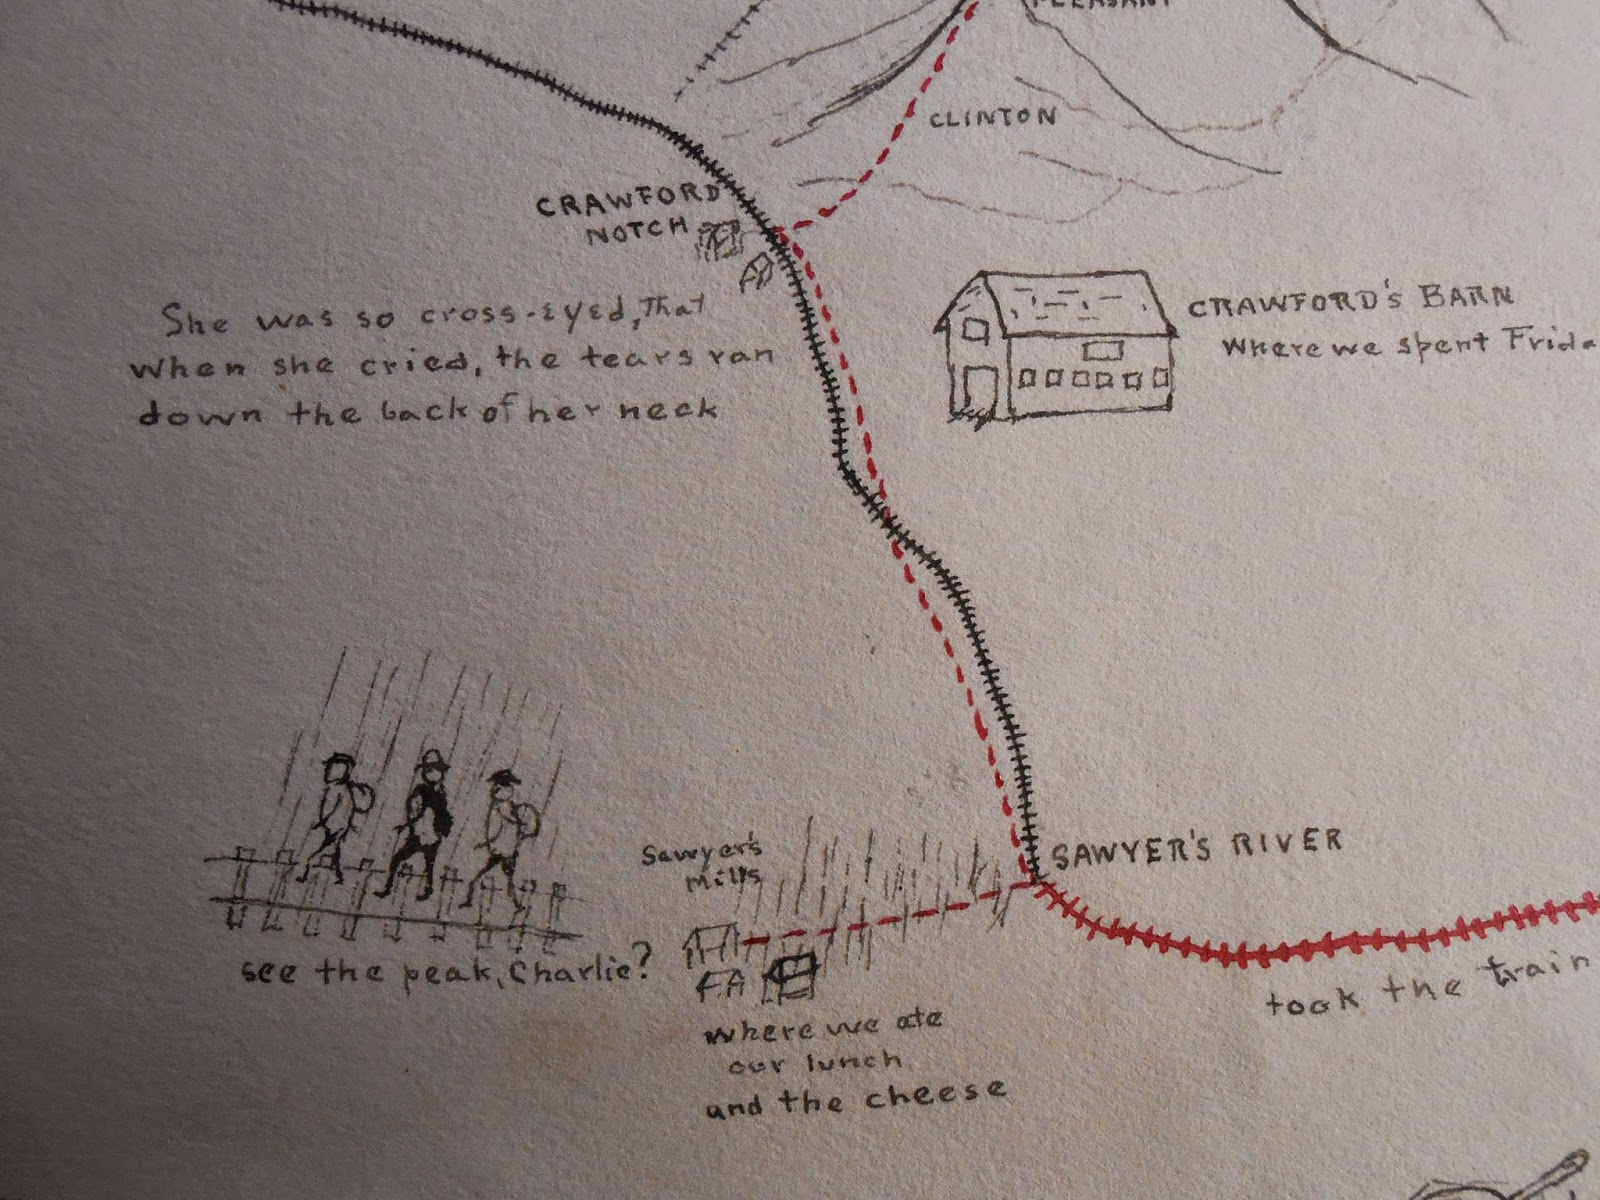 A detail from the map, showing three walking figures.